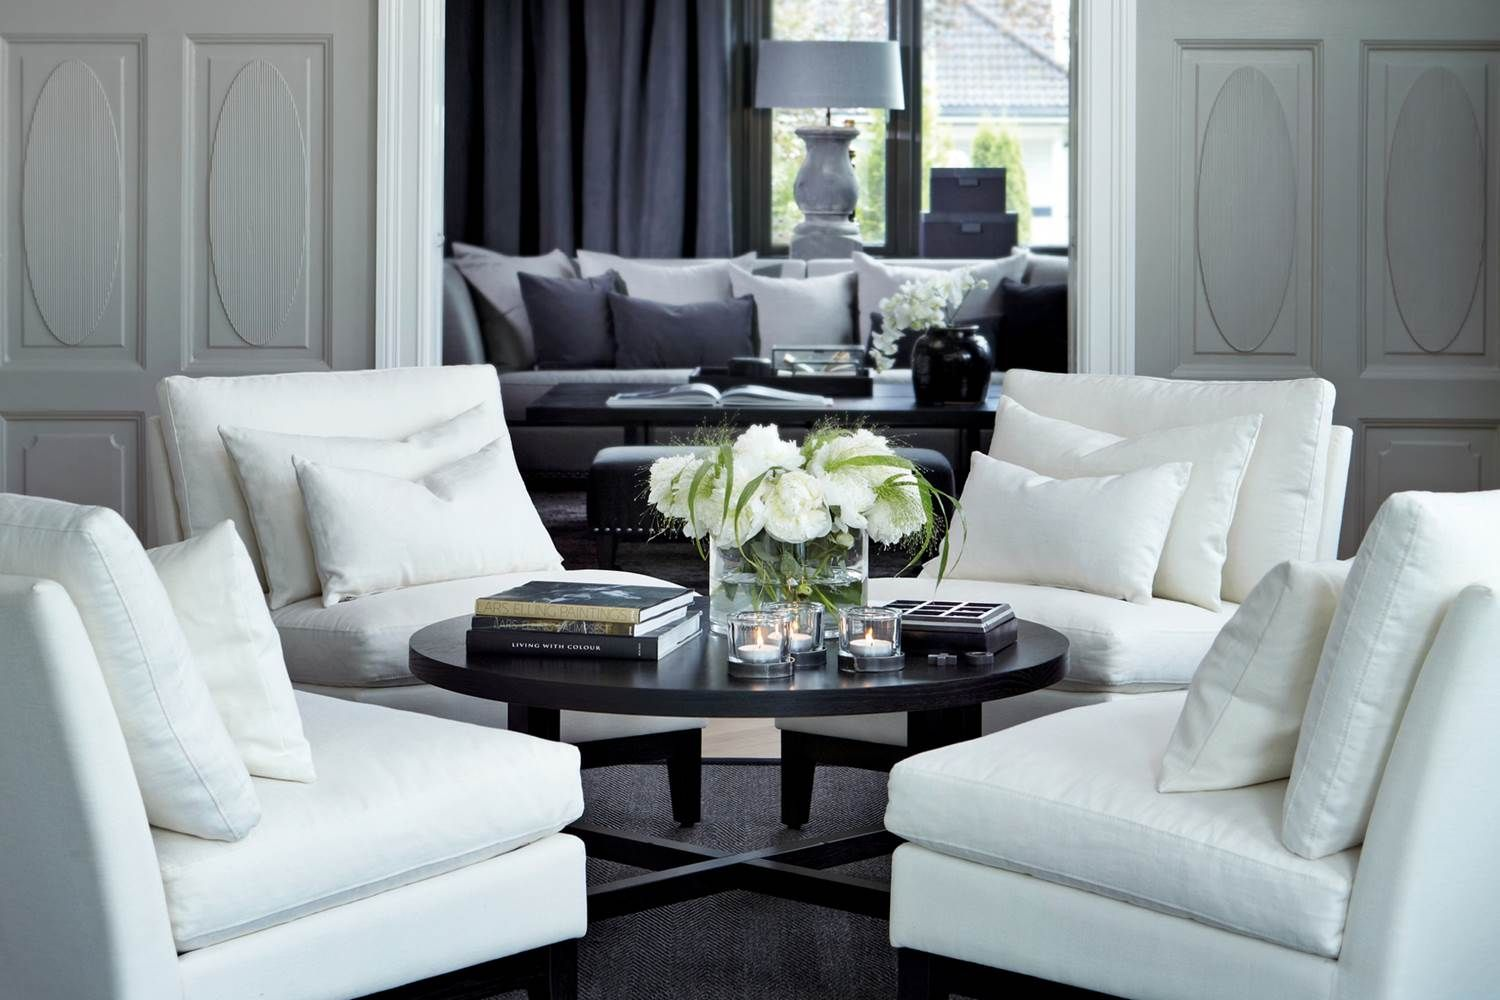 Lounge Black White Grey Dark Table With White Chairs Livingroom Inspo Nate Berkus Poltronas Giratorias Och Mesas Baixas